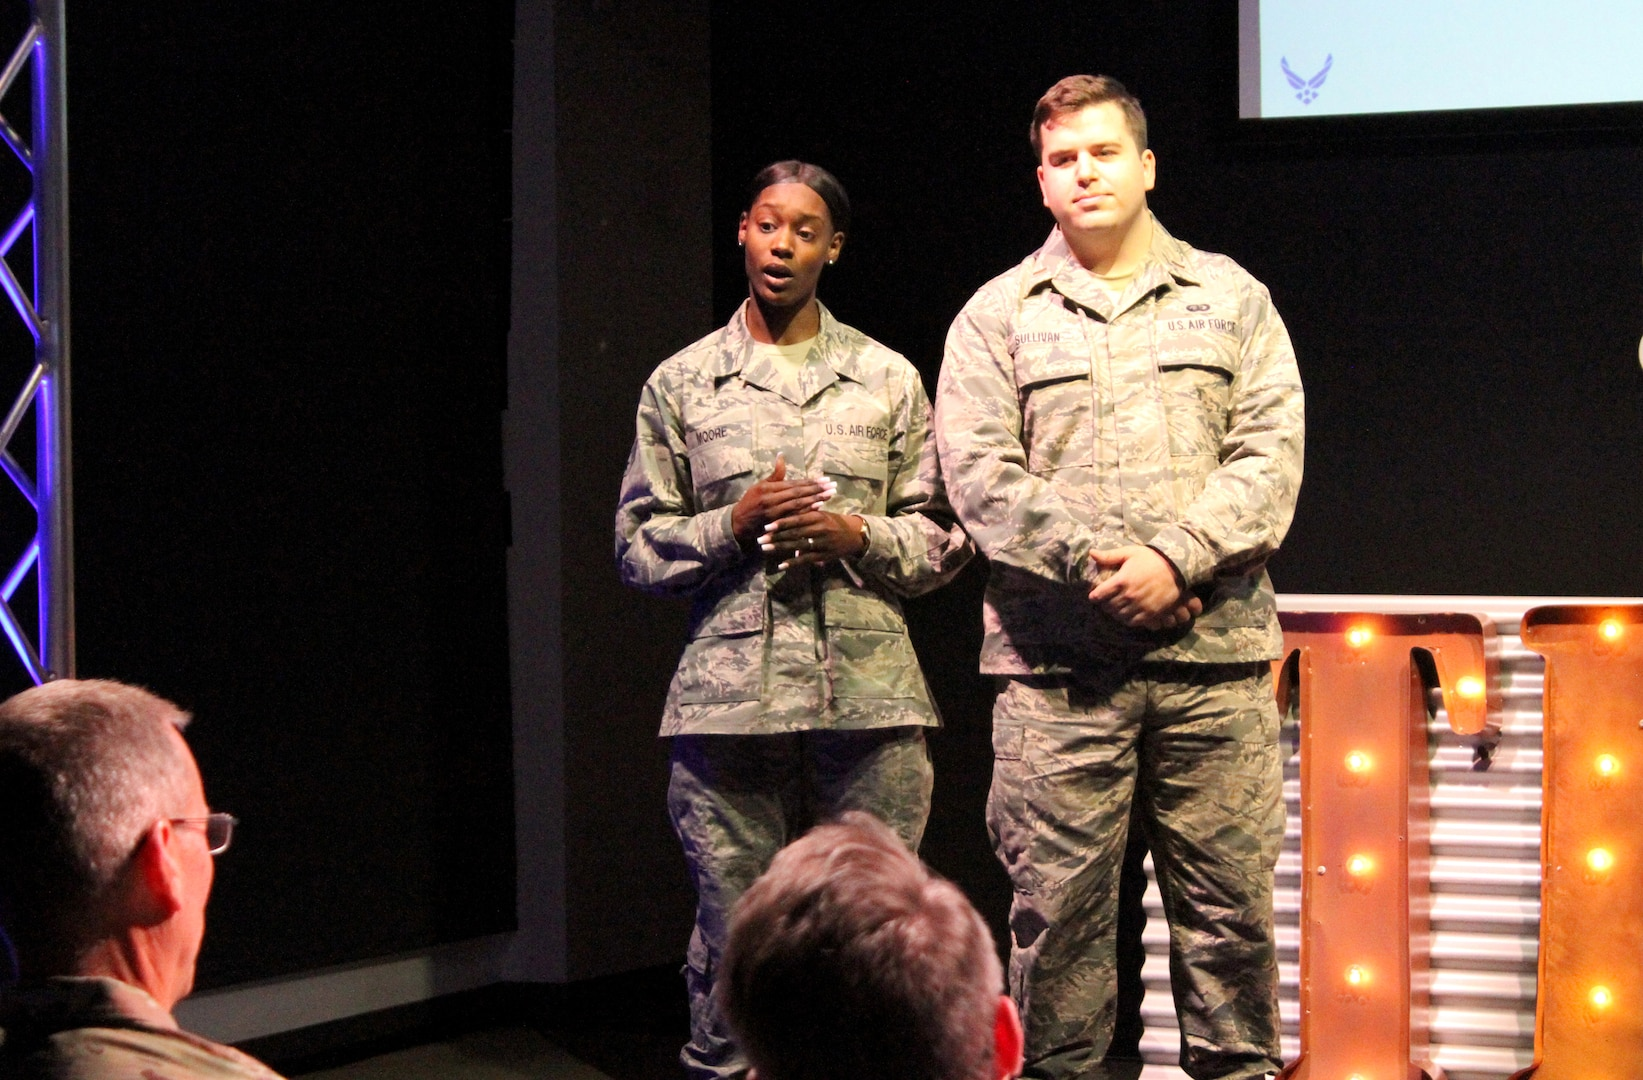 Second Lt. Thomas Sullivan and Senior Airman Ny'Daisha Moore present their idea for AF Eats, an app-based food order and delivery service, to senior leaders during the 2020 Air Force Installation and Mission Support Center Innovation Rodeo, Feb. 7, 2020, in San Antonio.